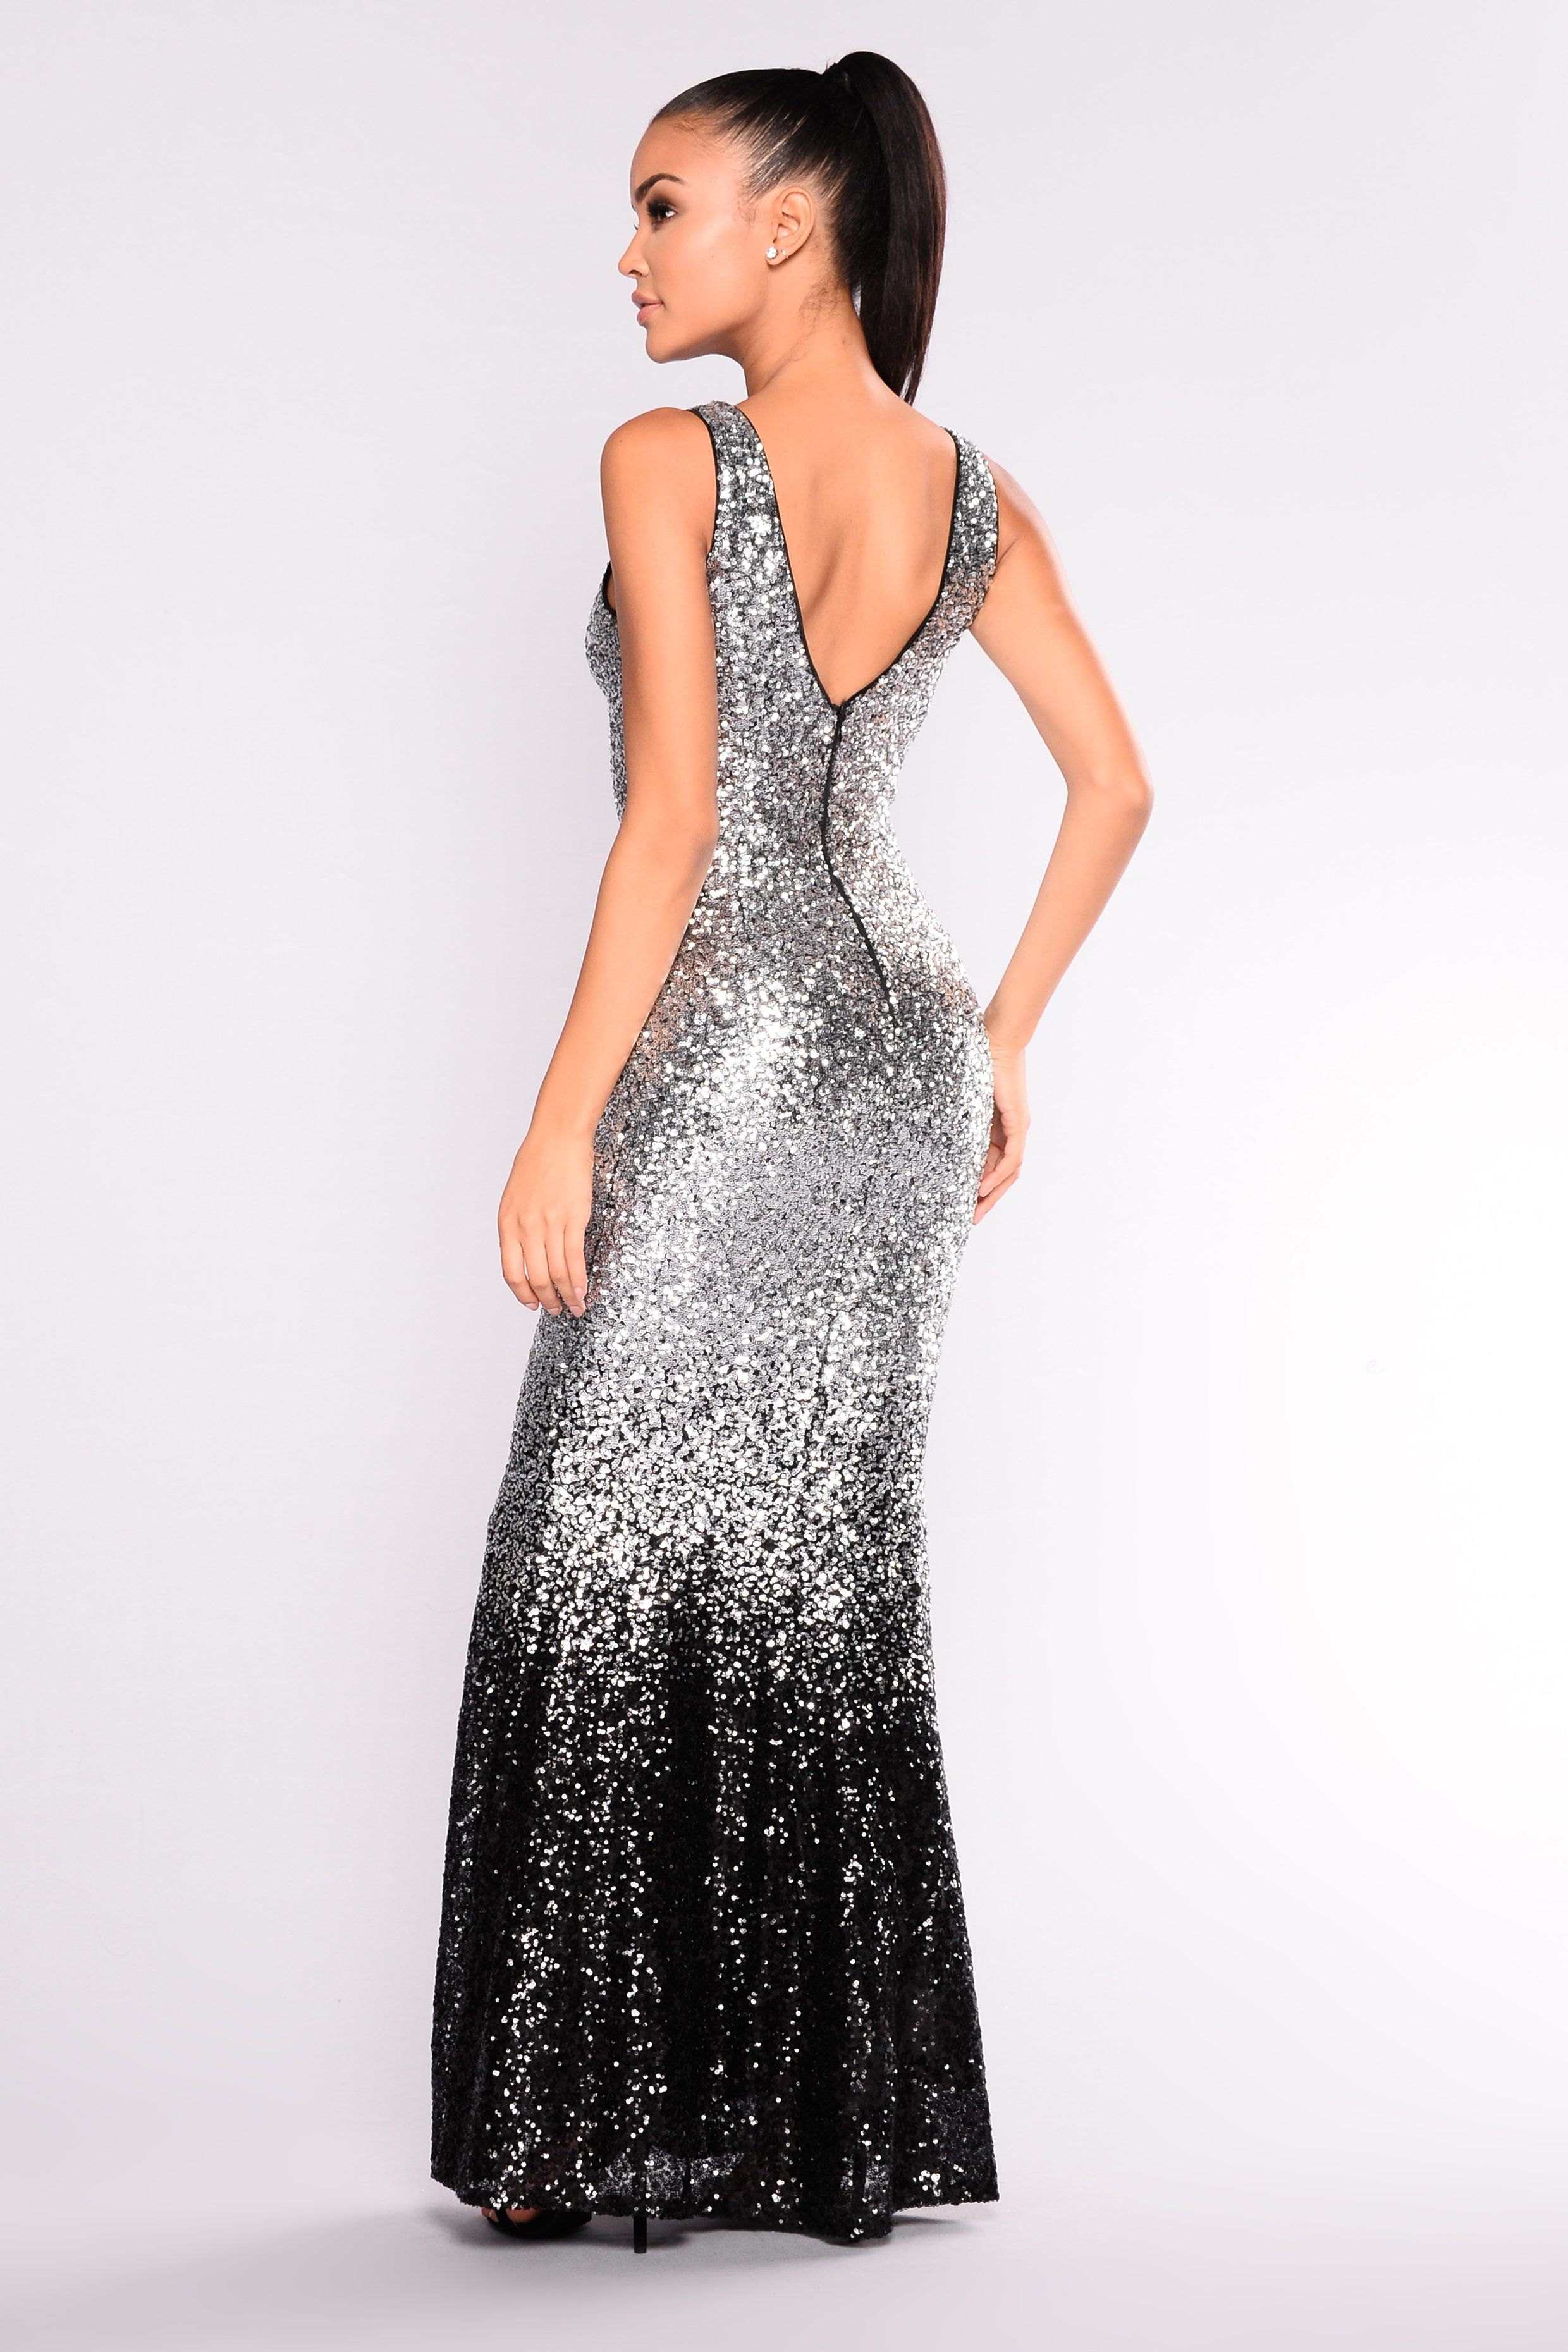 f717ad573ffe5 Stars Are Bright Sequin Dress - Silver Black